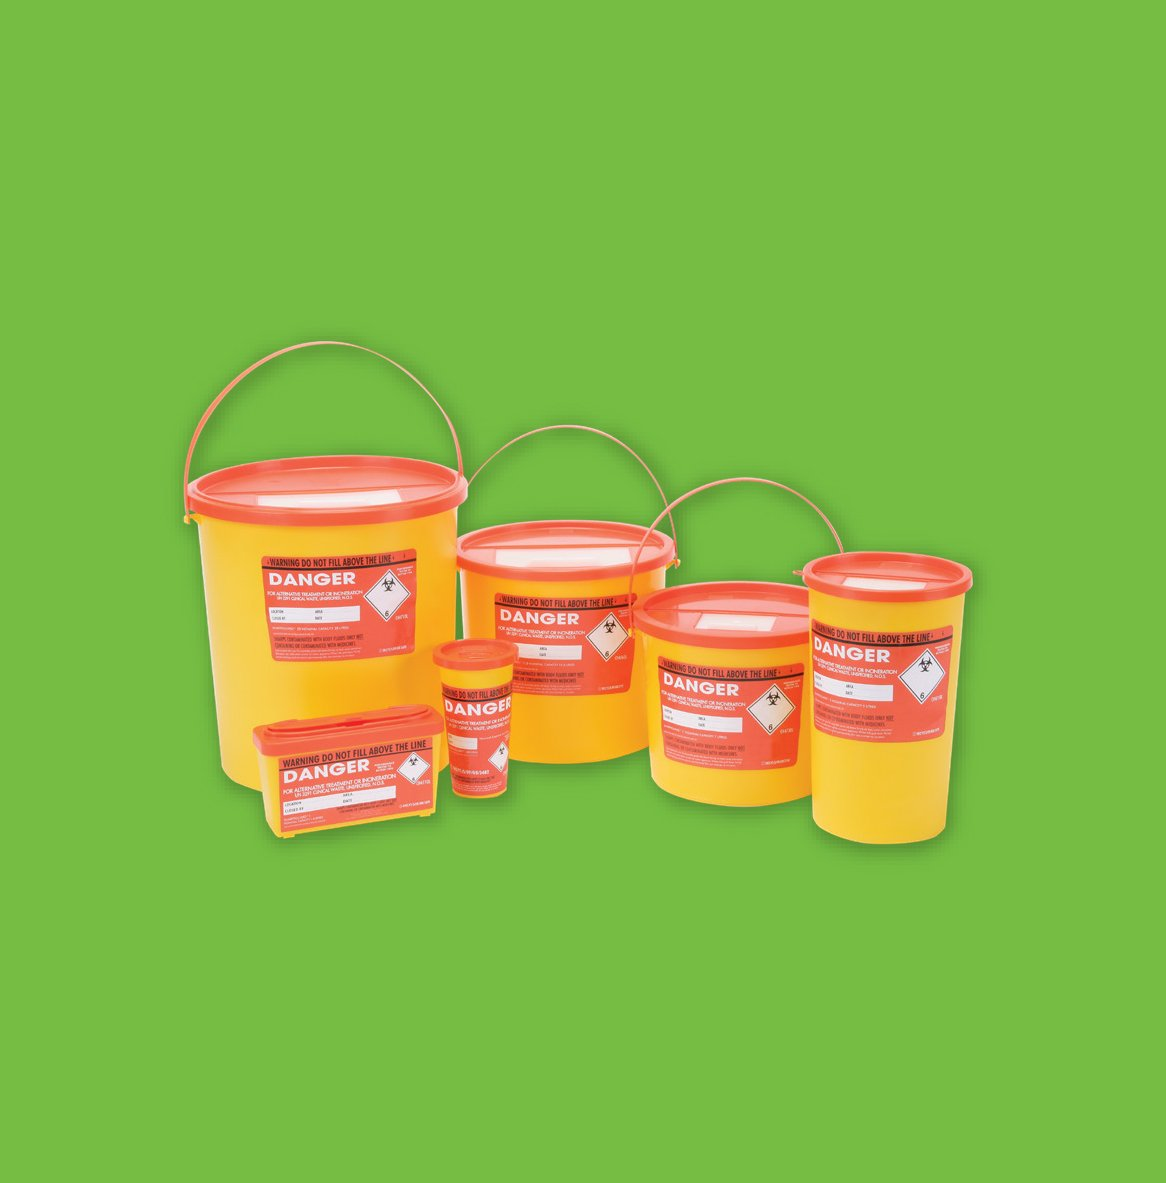 orange bin for waste contaminated with body fluids or non-medical